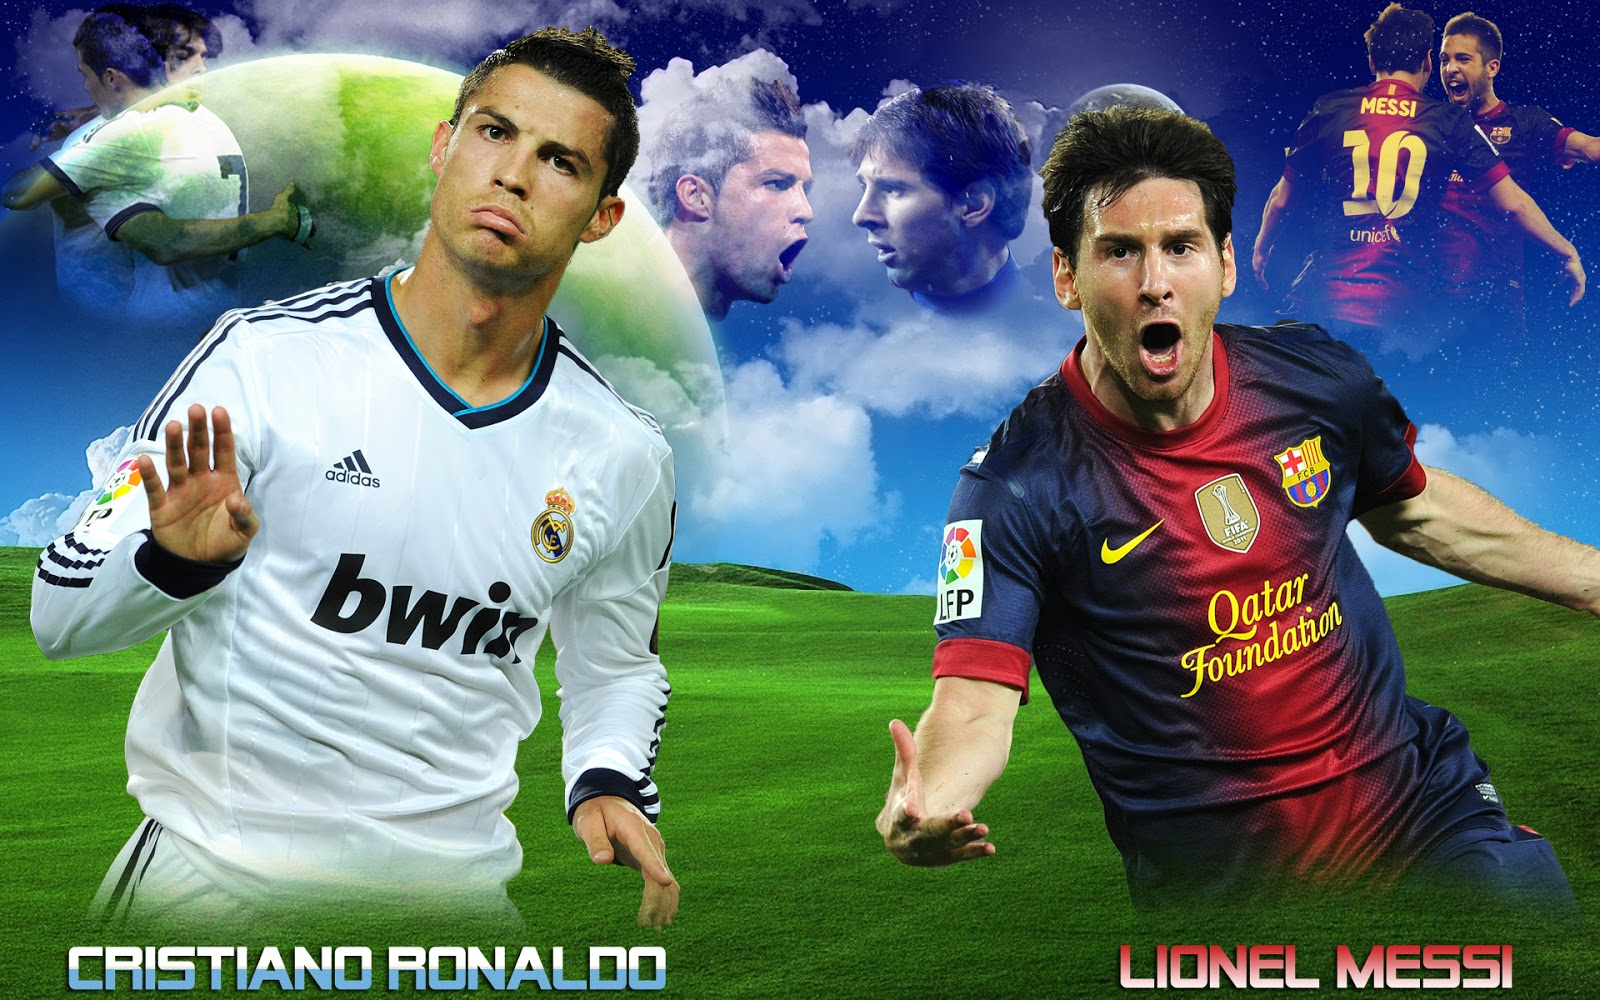 hd cristiano ronaldo vs lionel messi 2013 wallpapers hd hq